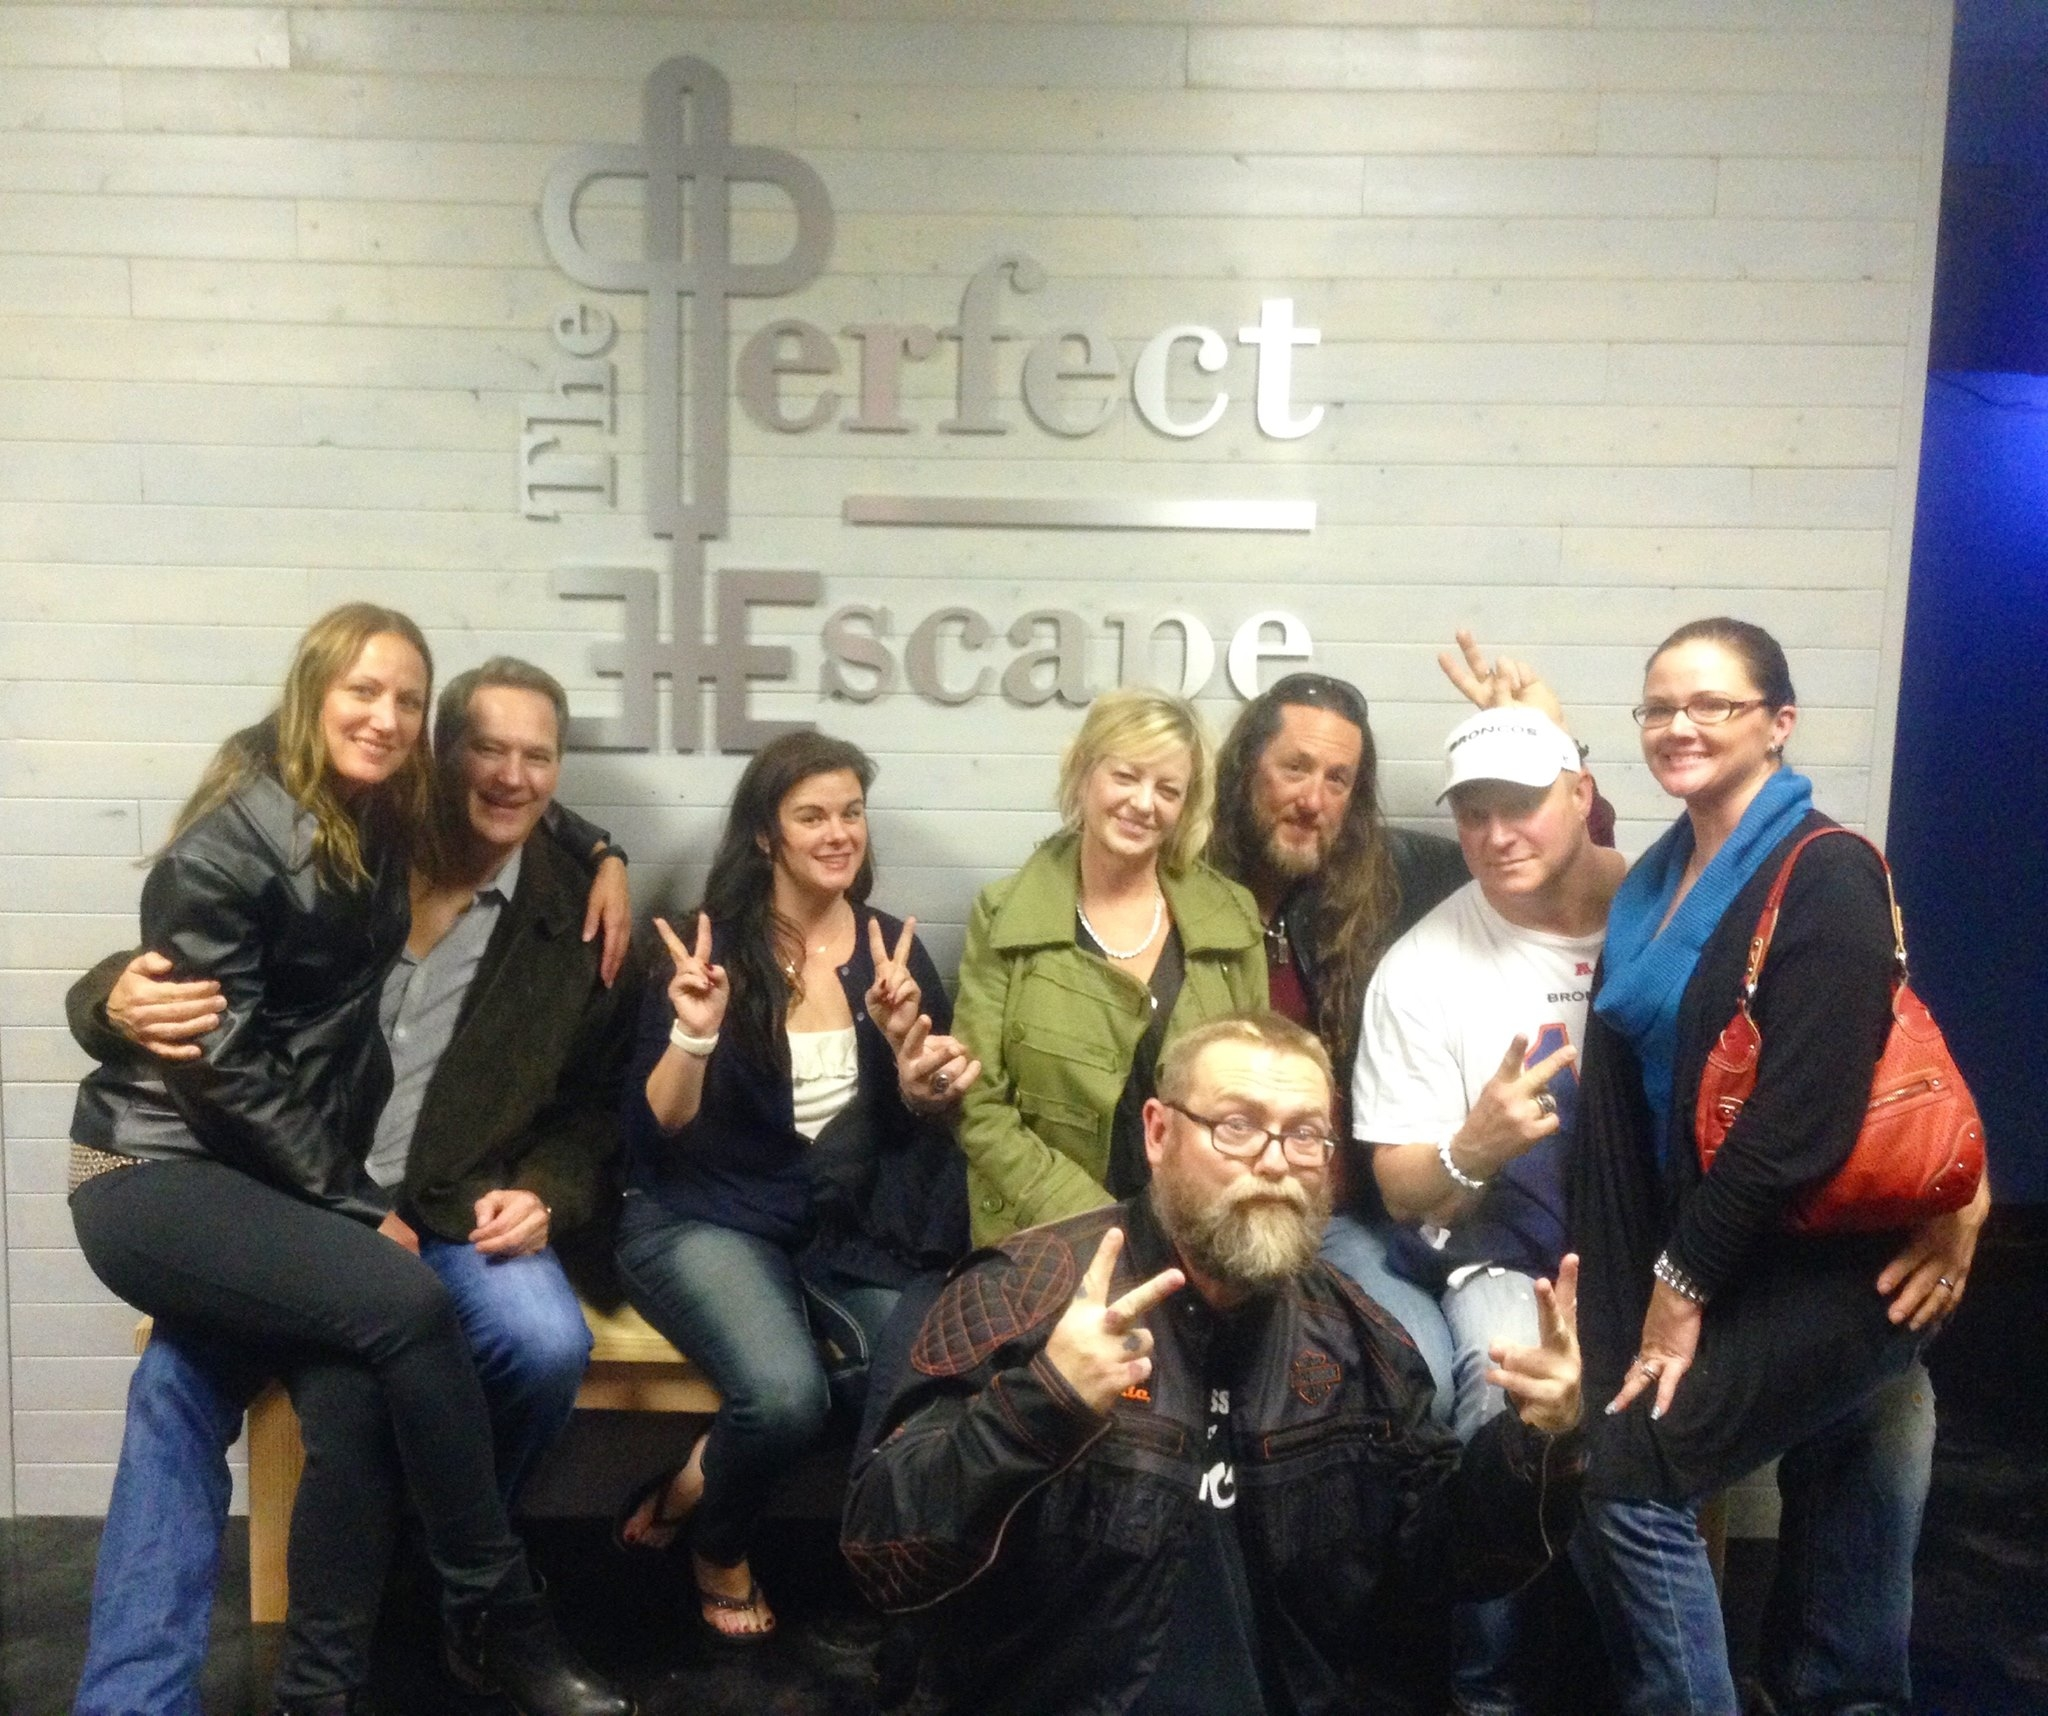 Euless Escape Room